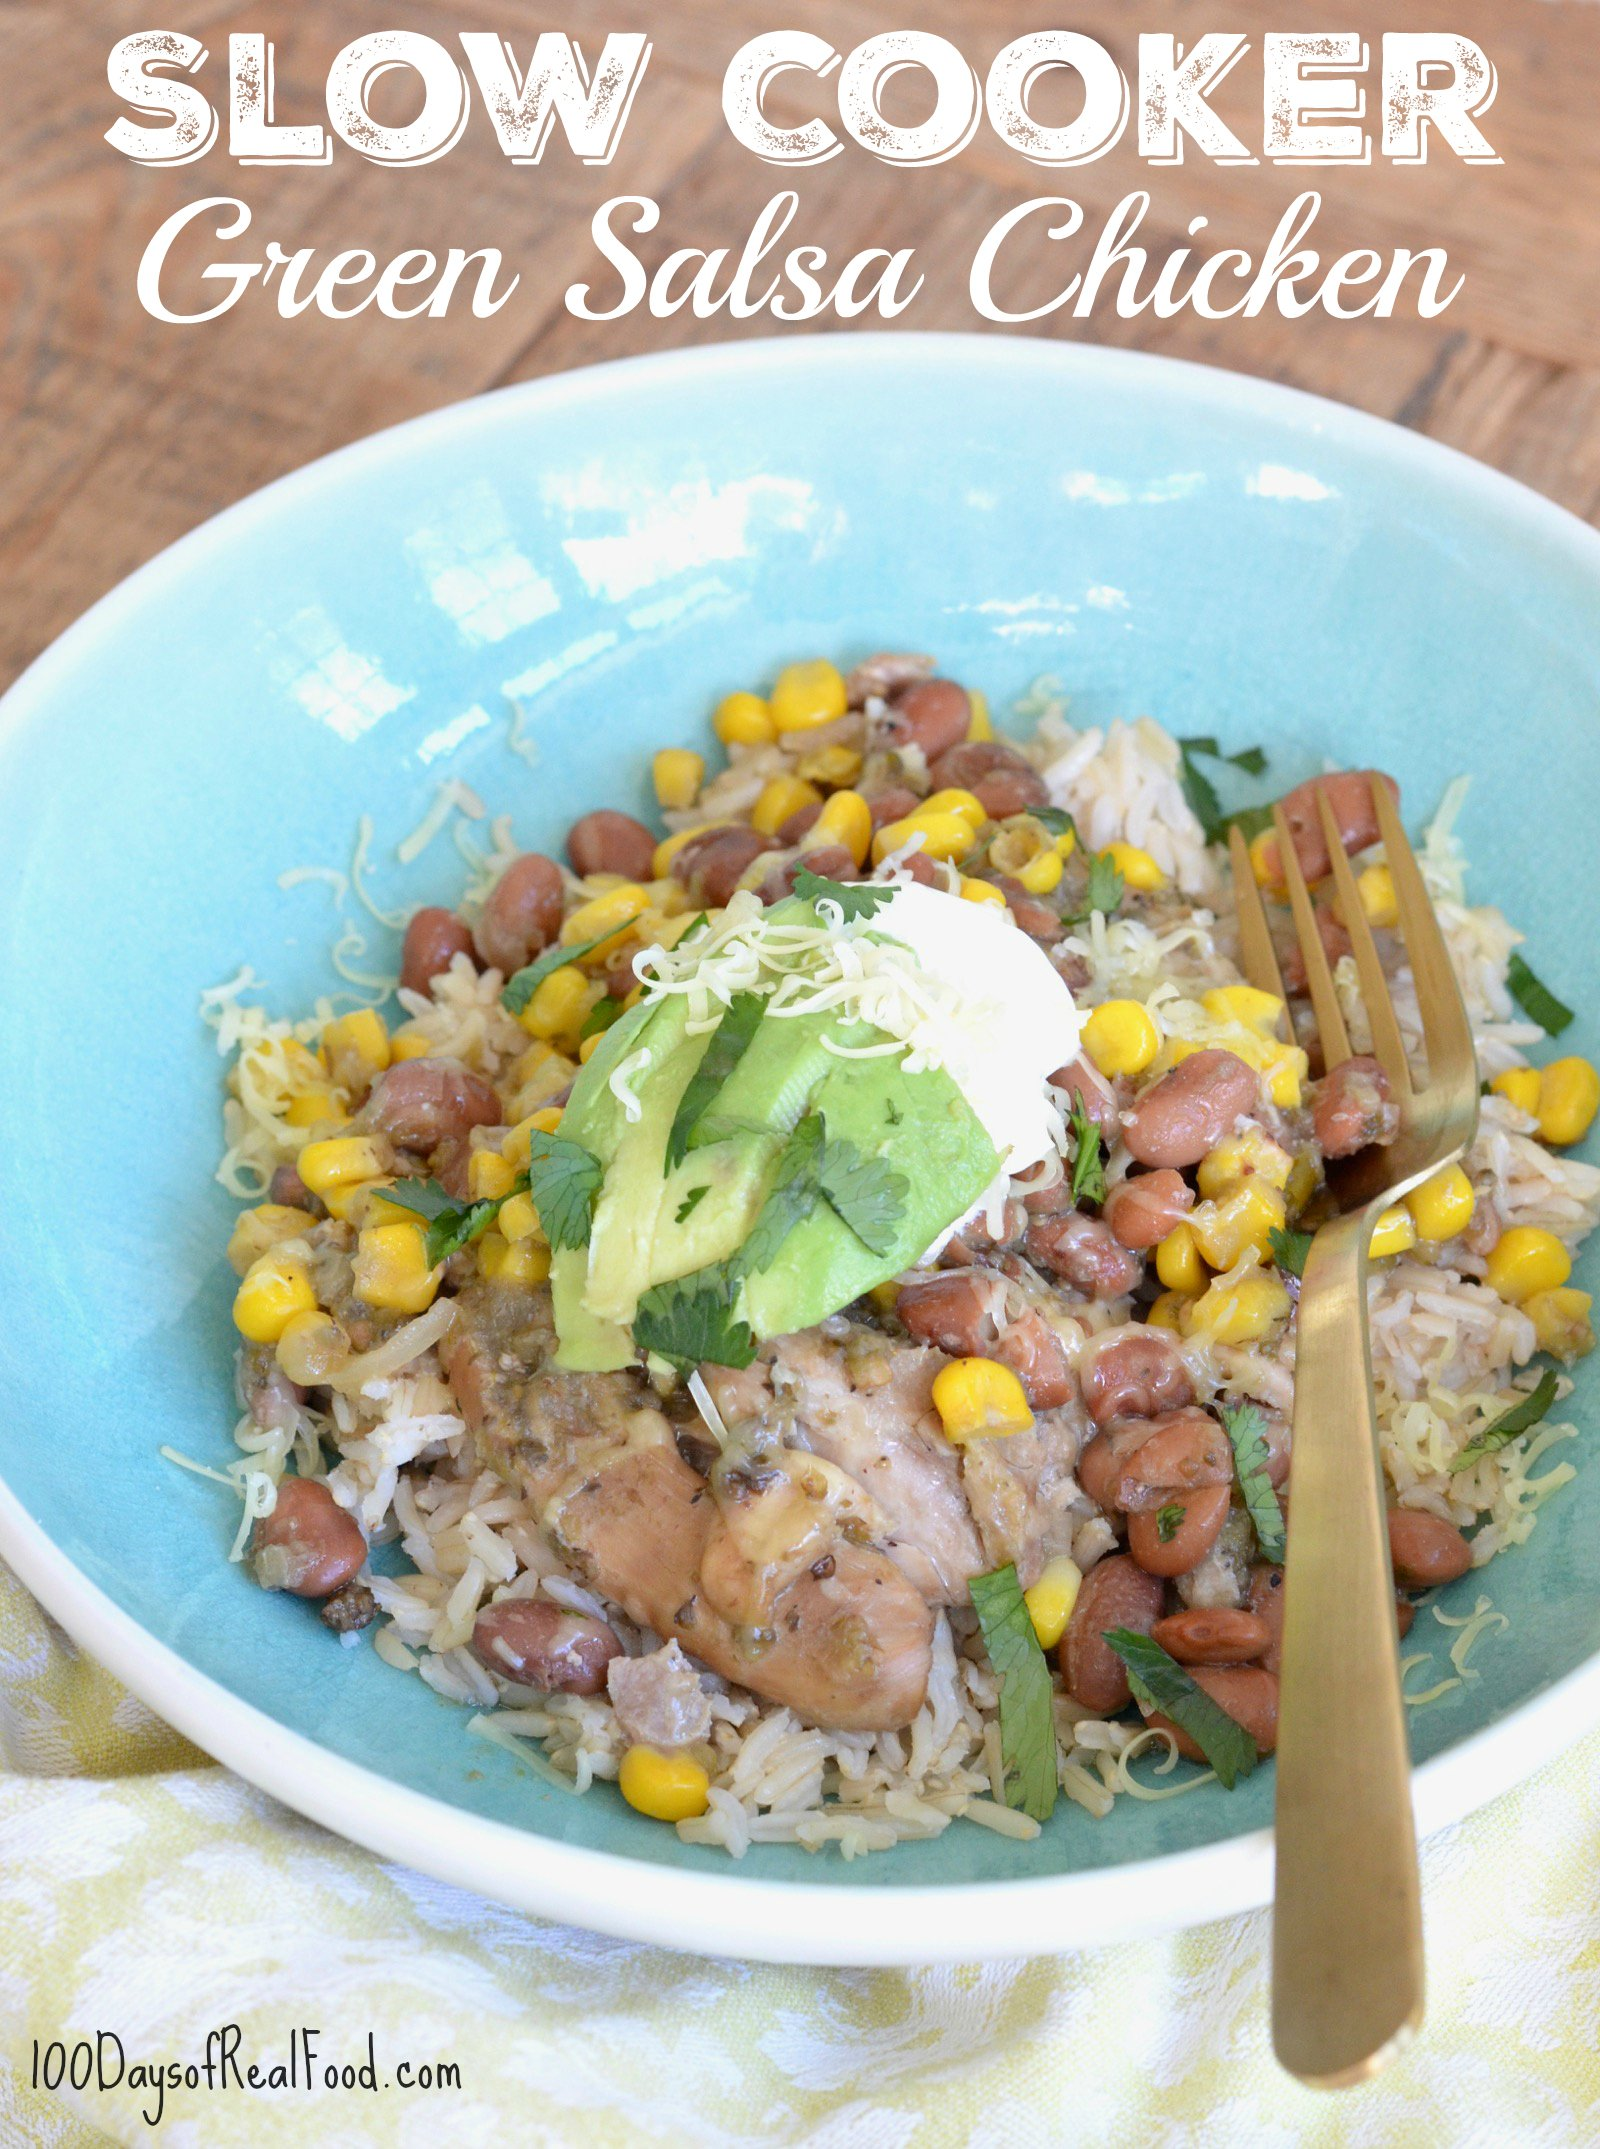 Slow Cooker Green Salsa Chicken 1